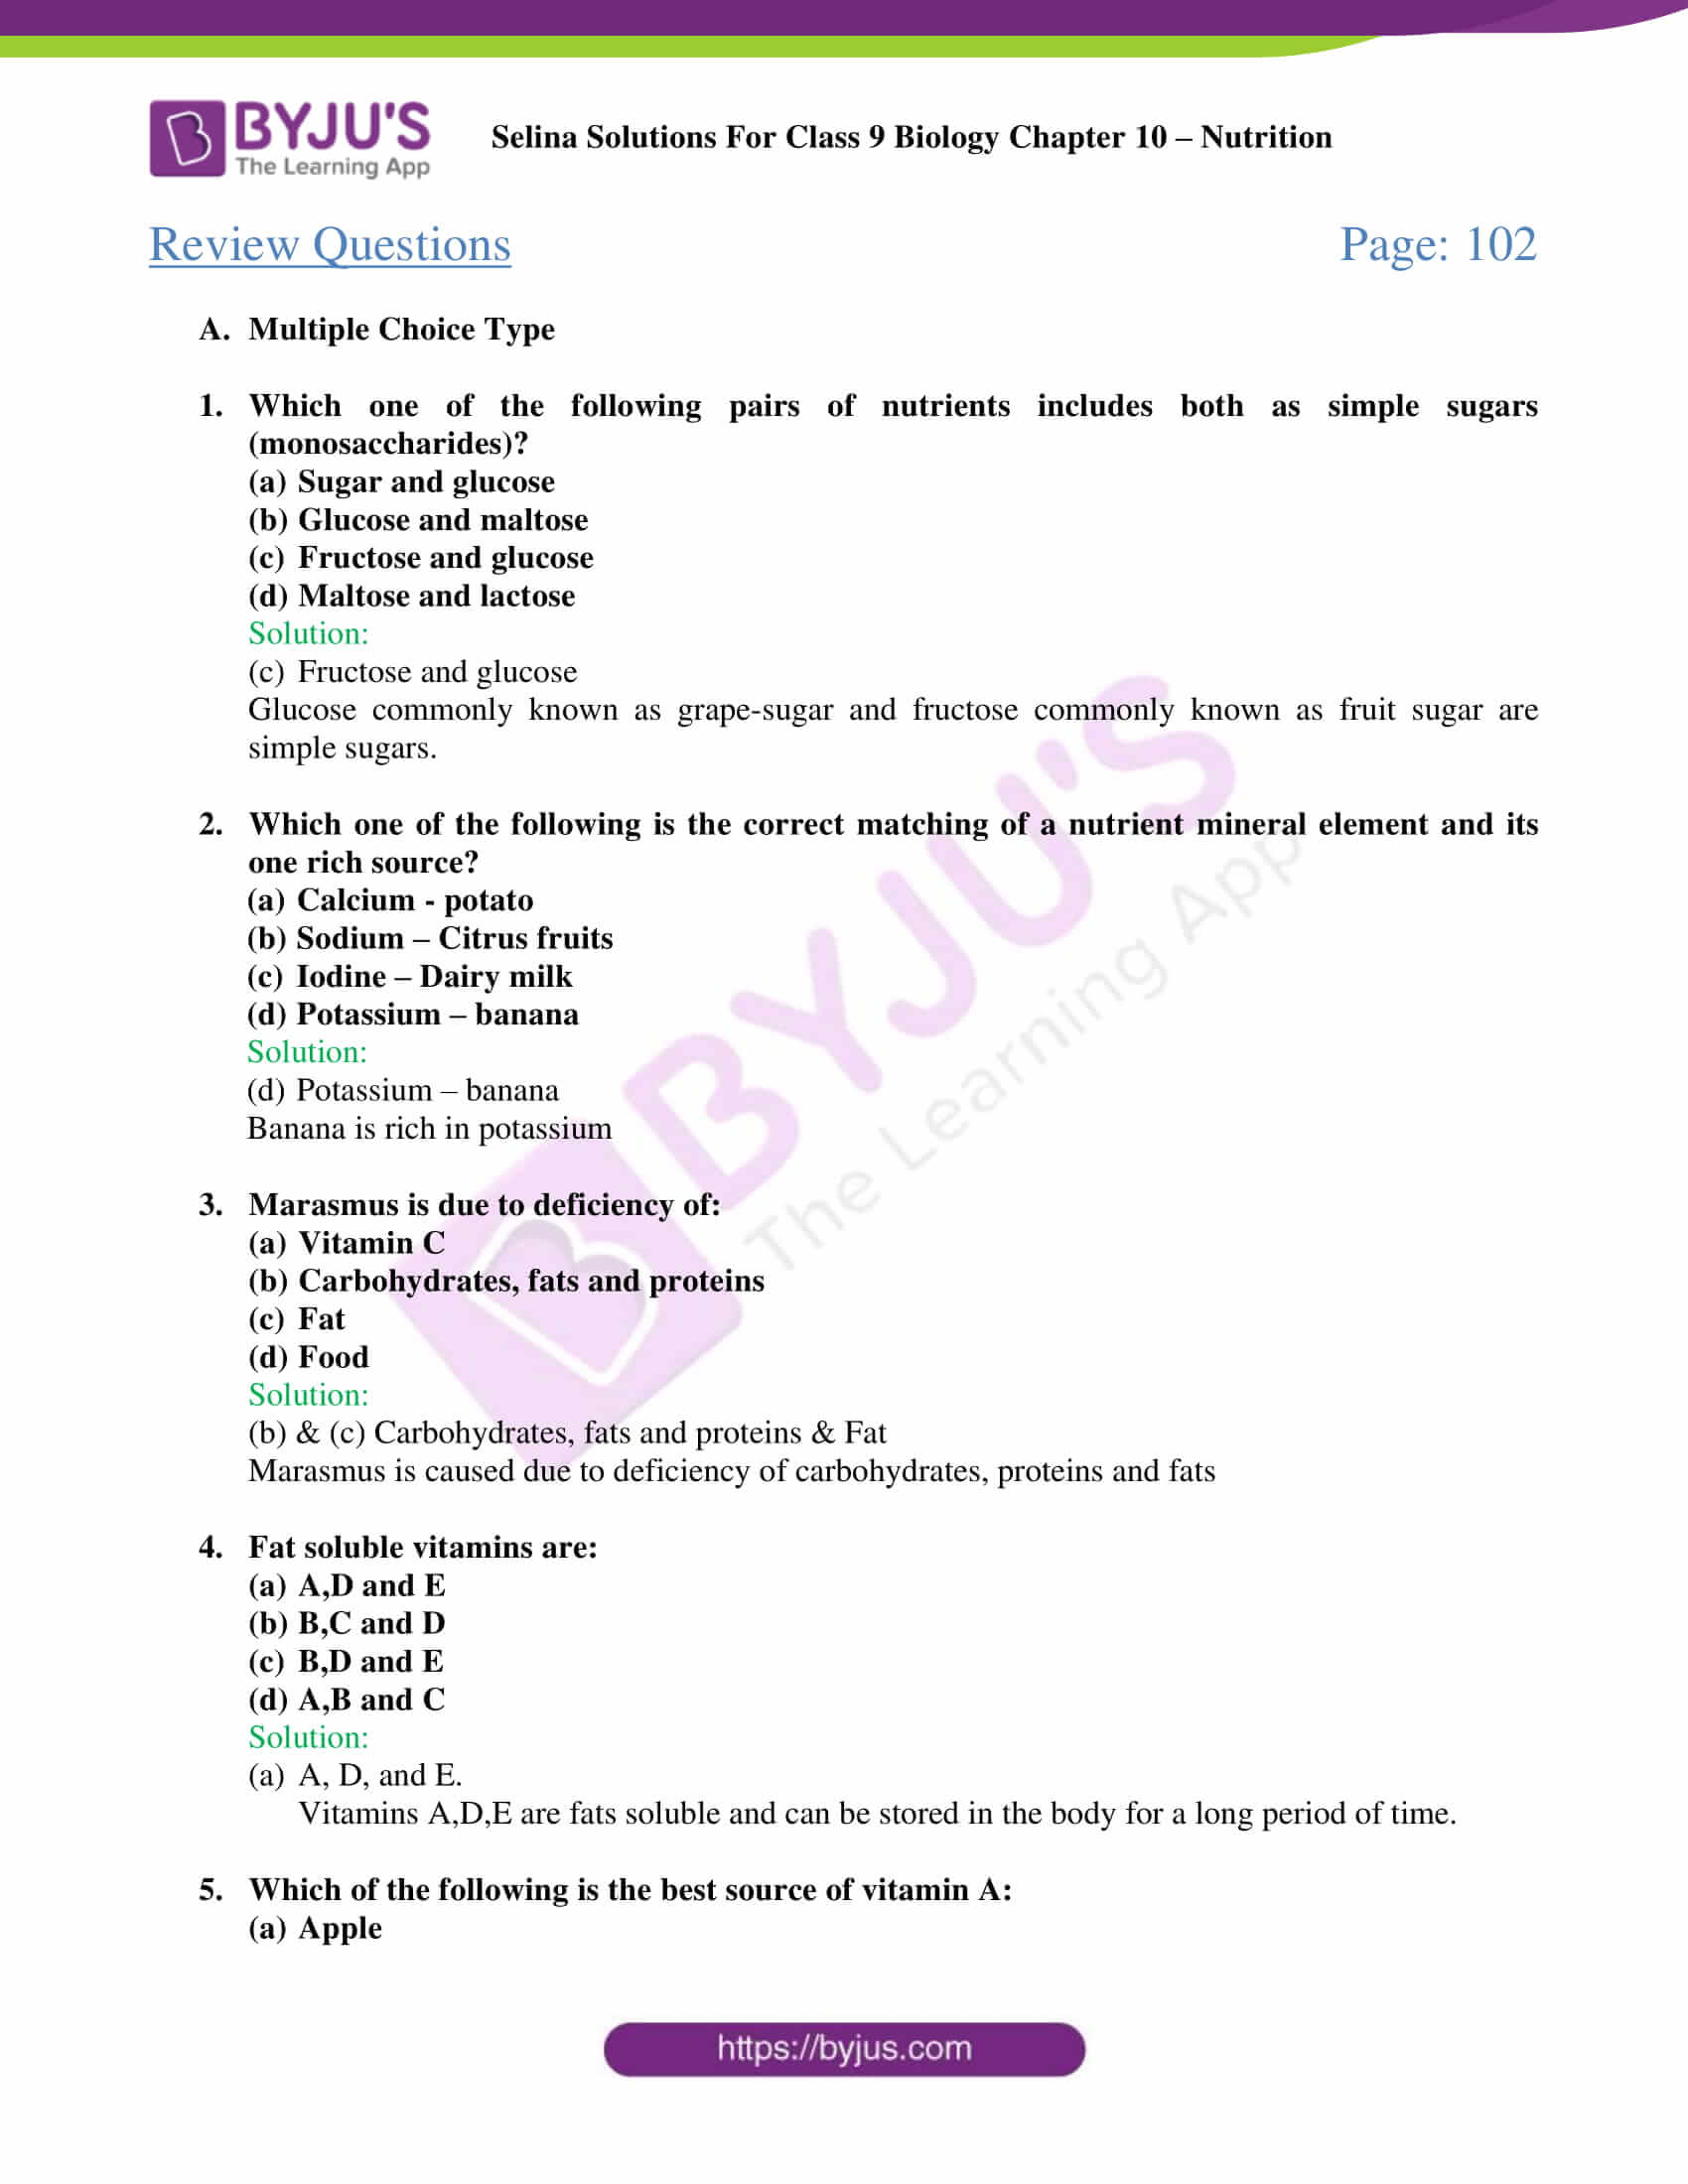 selina Solutions For Class 9 Biology Chapter 10 part 2